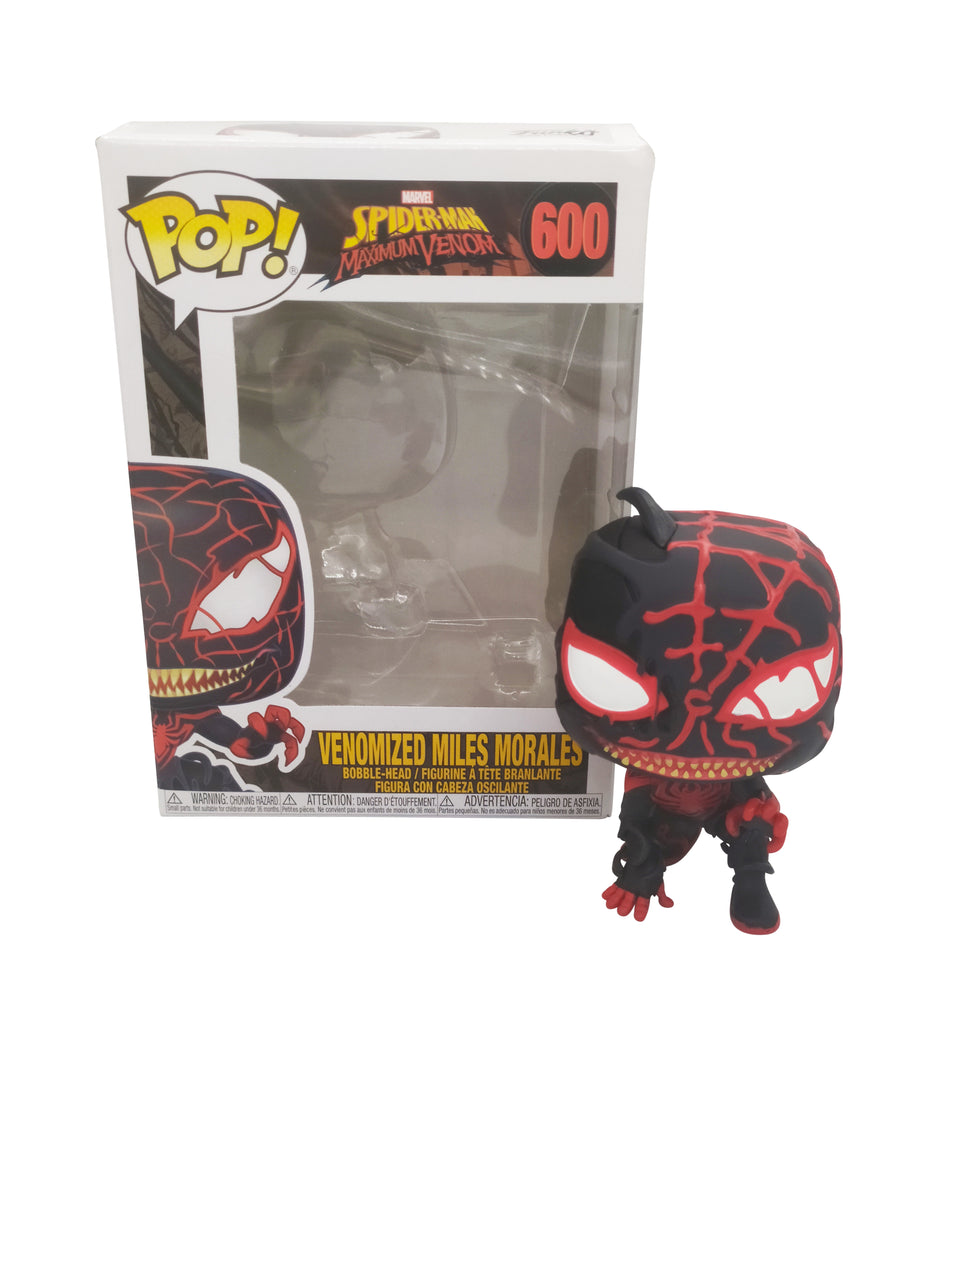 FUNKO POP SPIDERMAN VENOMIZED MILES MORALES